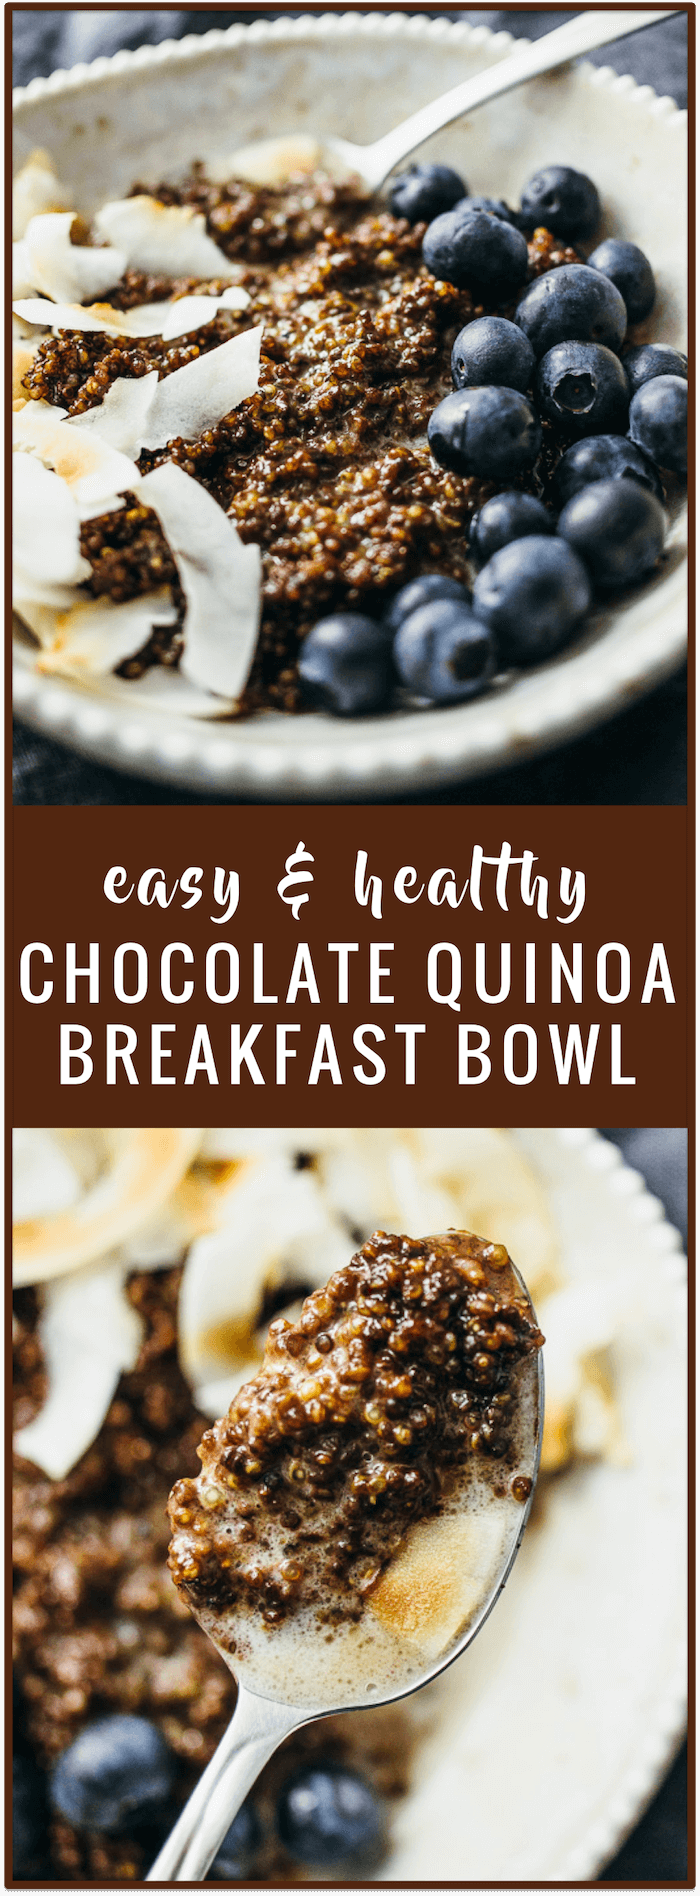 You'll love this chocolate quinoa breakfast bowl recipe with toasted coconut chips and fresh blueberries -- it's easy to make, healthy, and vegan.